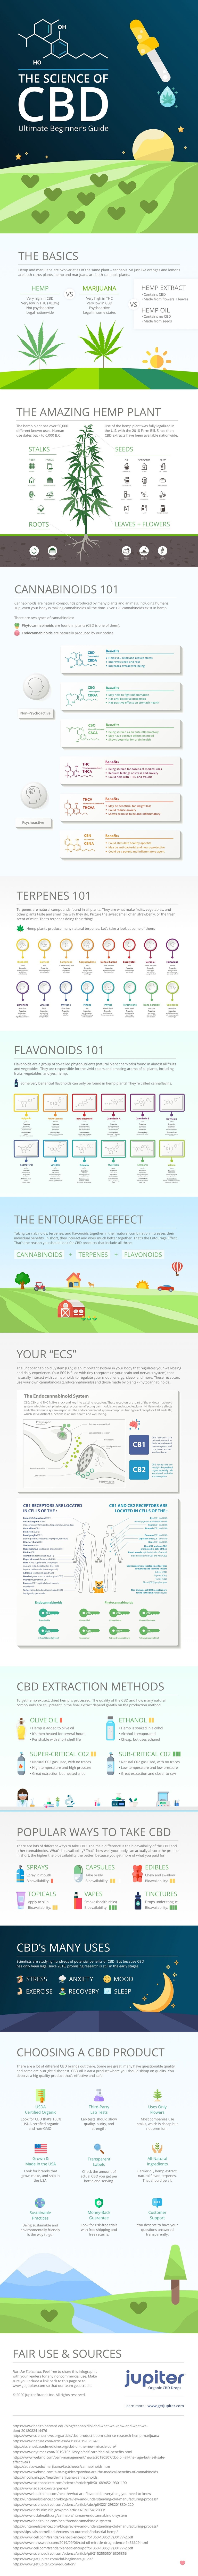 The Science of CBD Ultimate Beginner's Guide #infographic